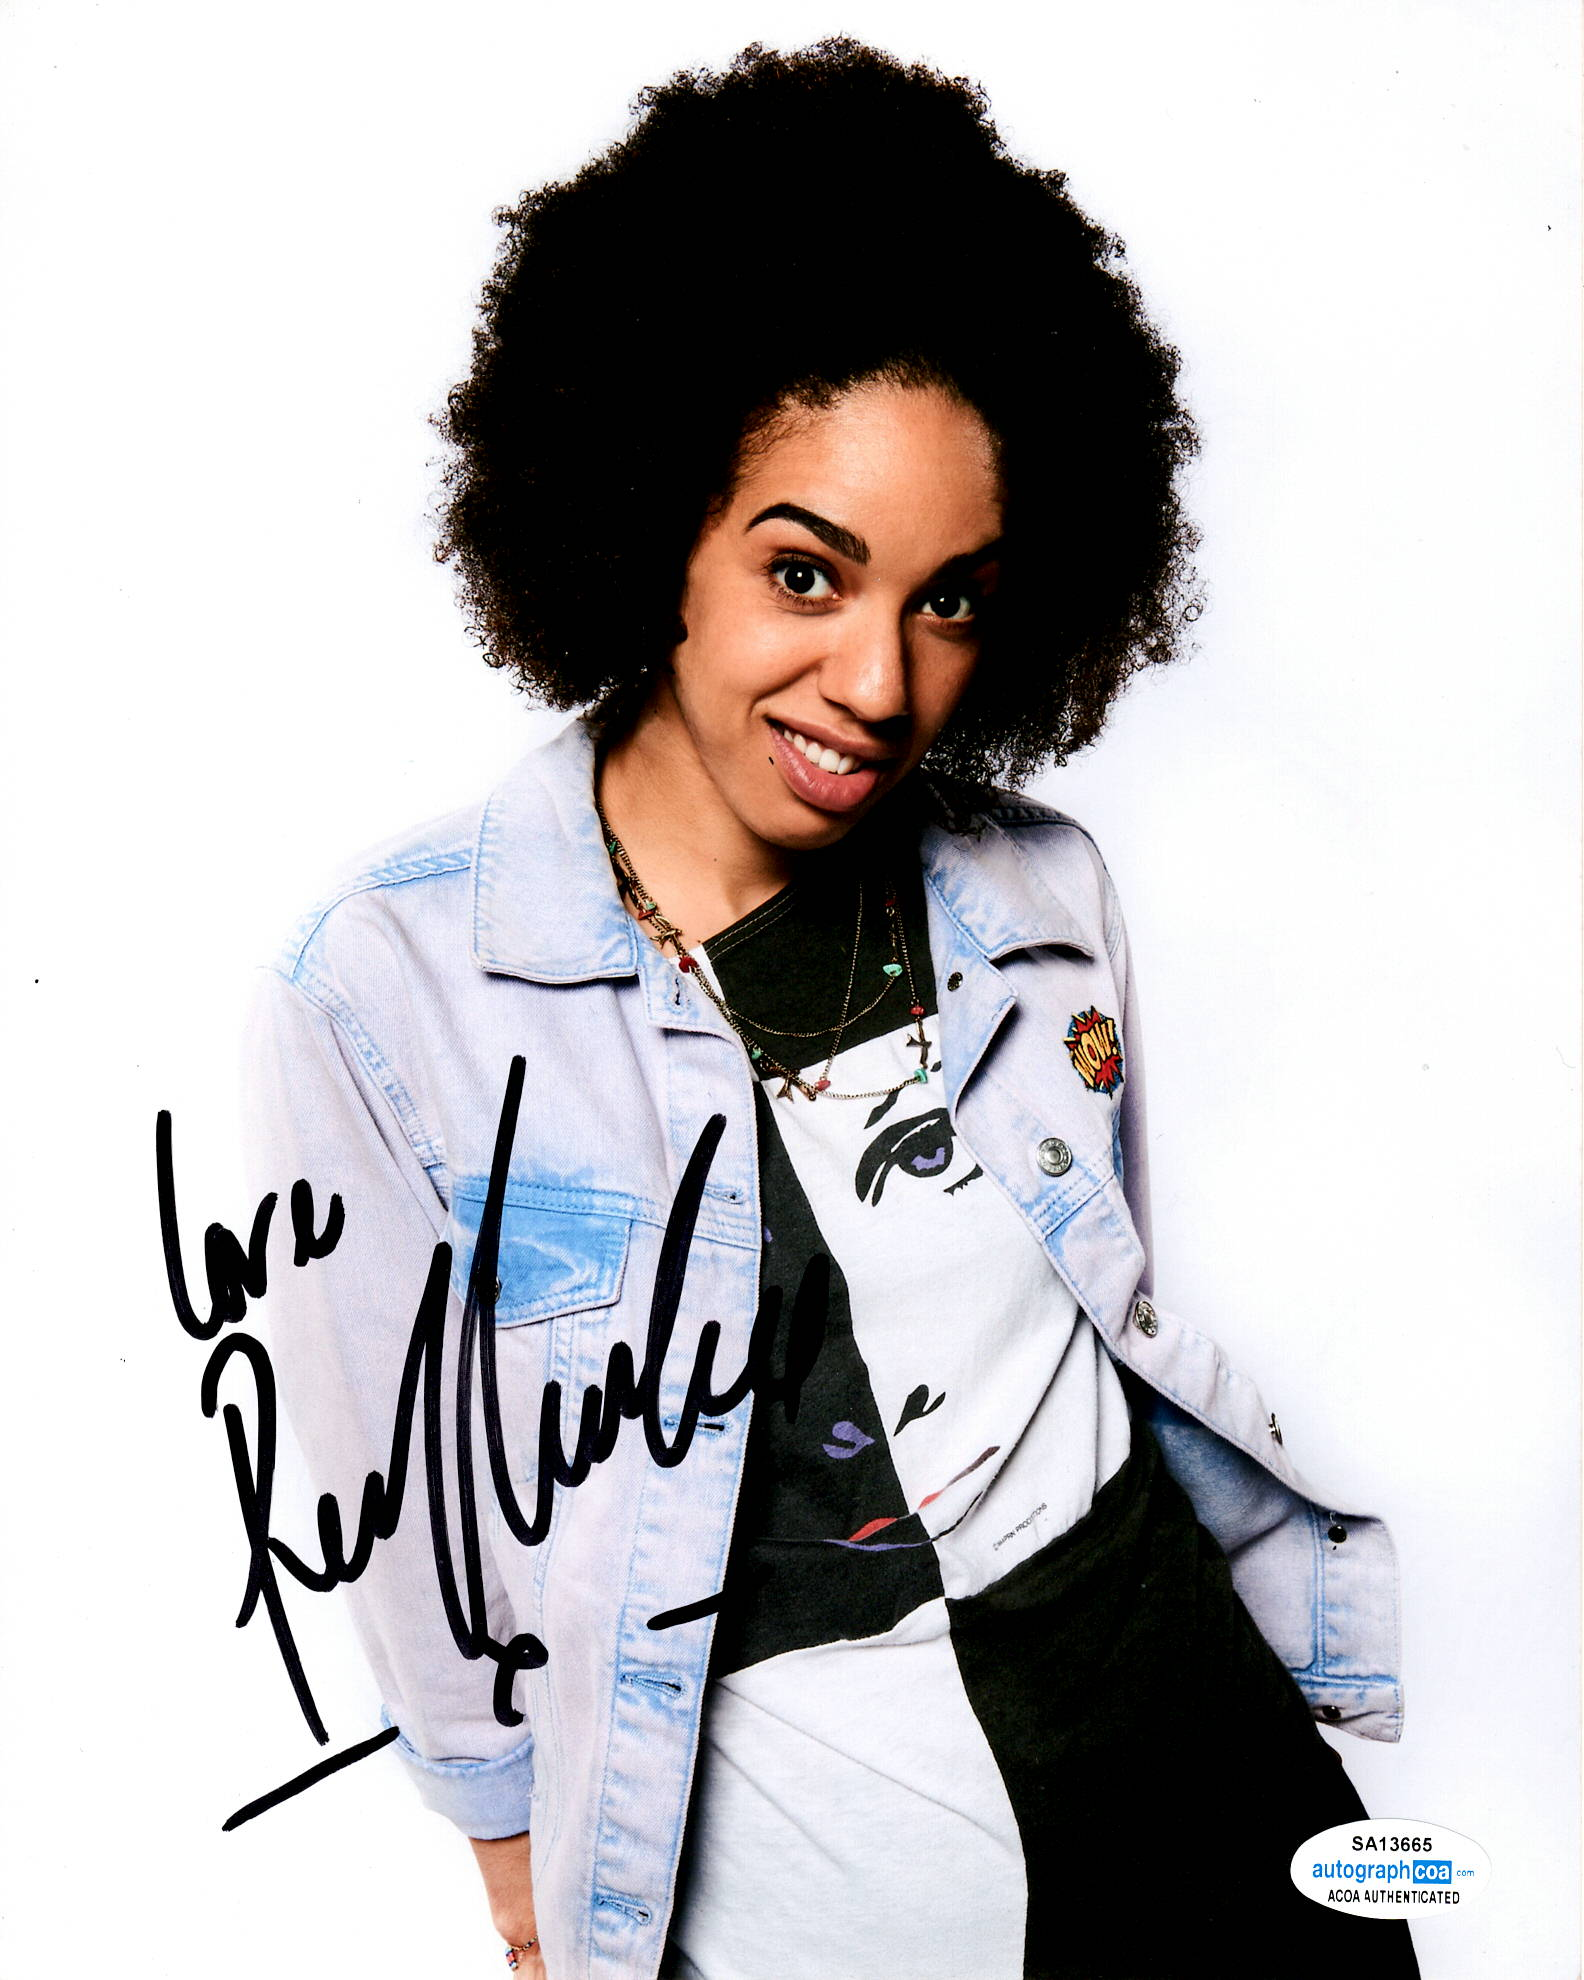 Pearl Mackie Doctor Who Signed Autograph 8x10 Photo #5